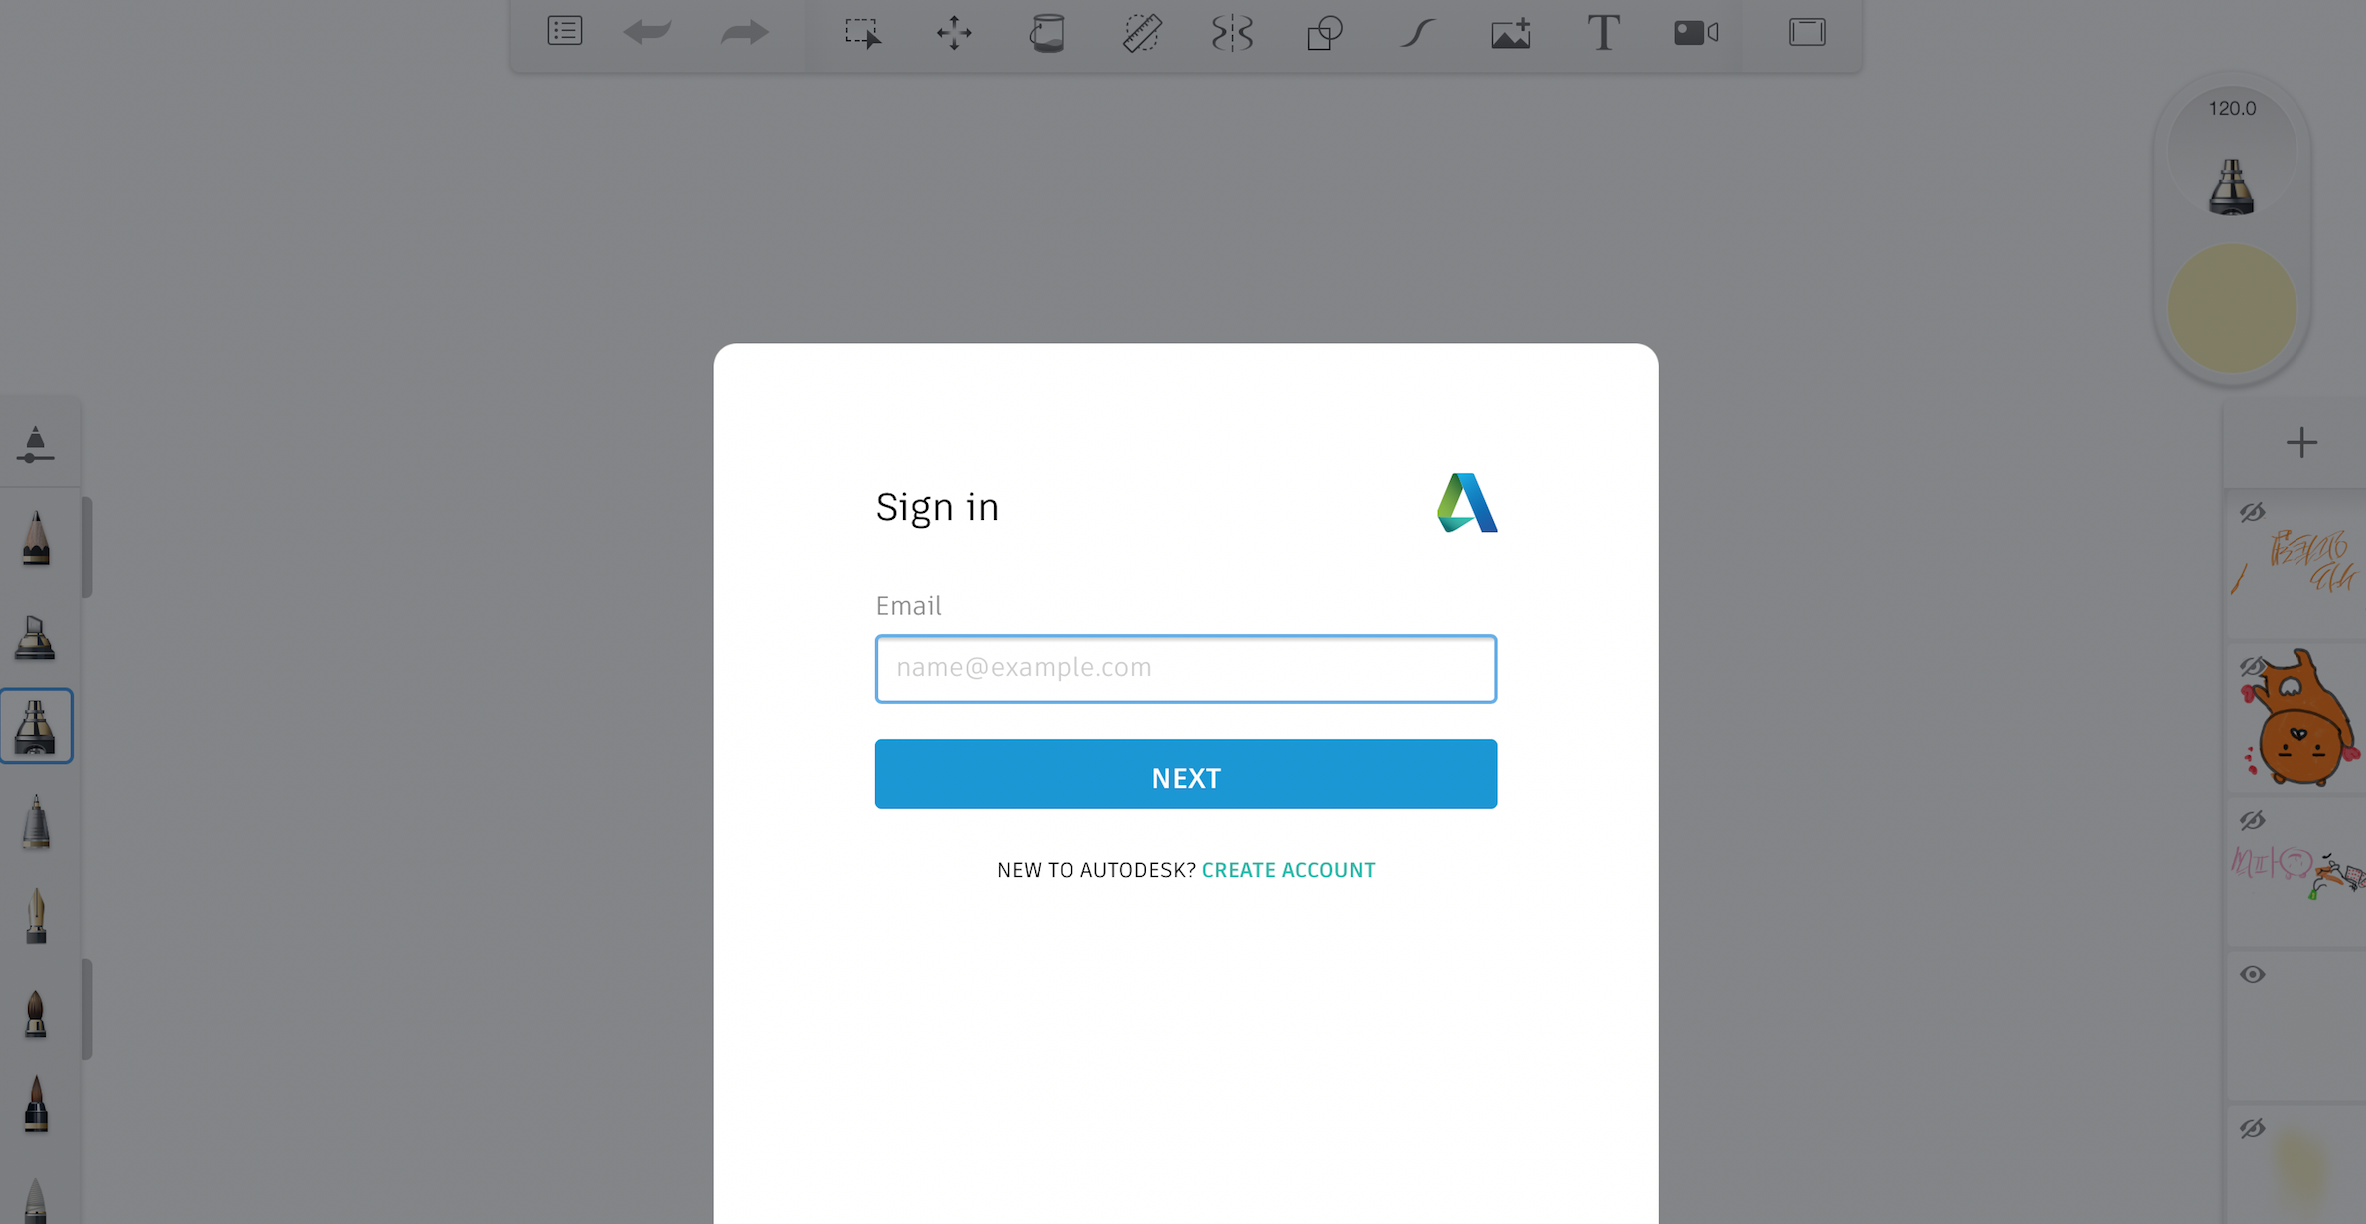 Why do I have to login to use? - Autodesk Community